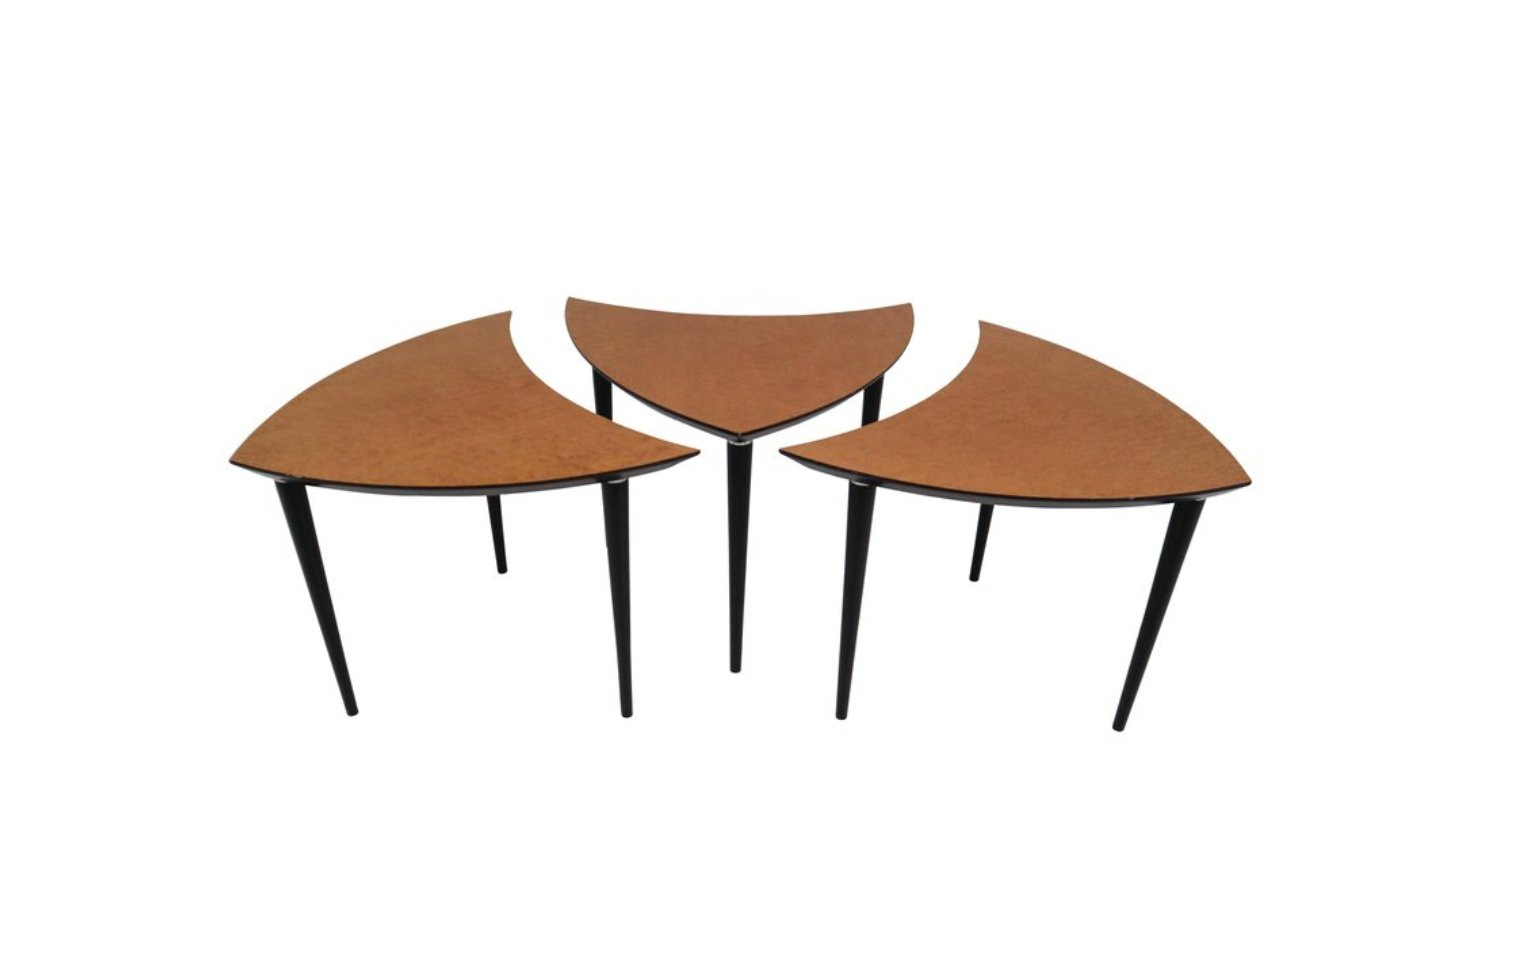 Small Italian Triangle Shaped Coffee Tables 1960s Set Of 3